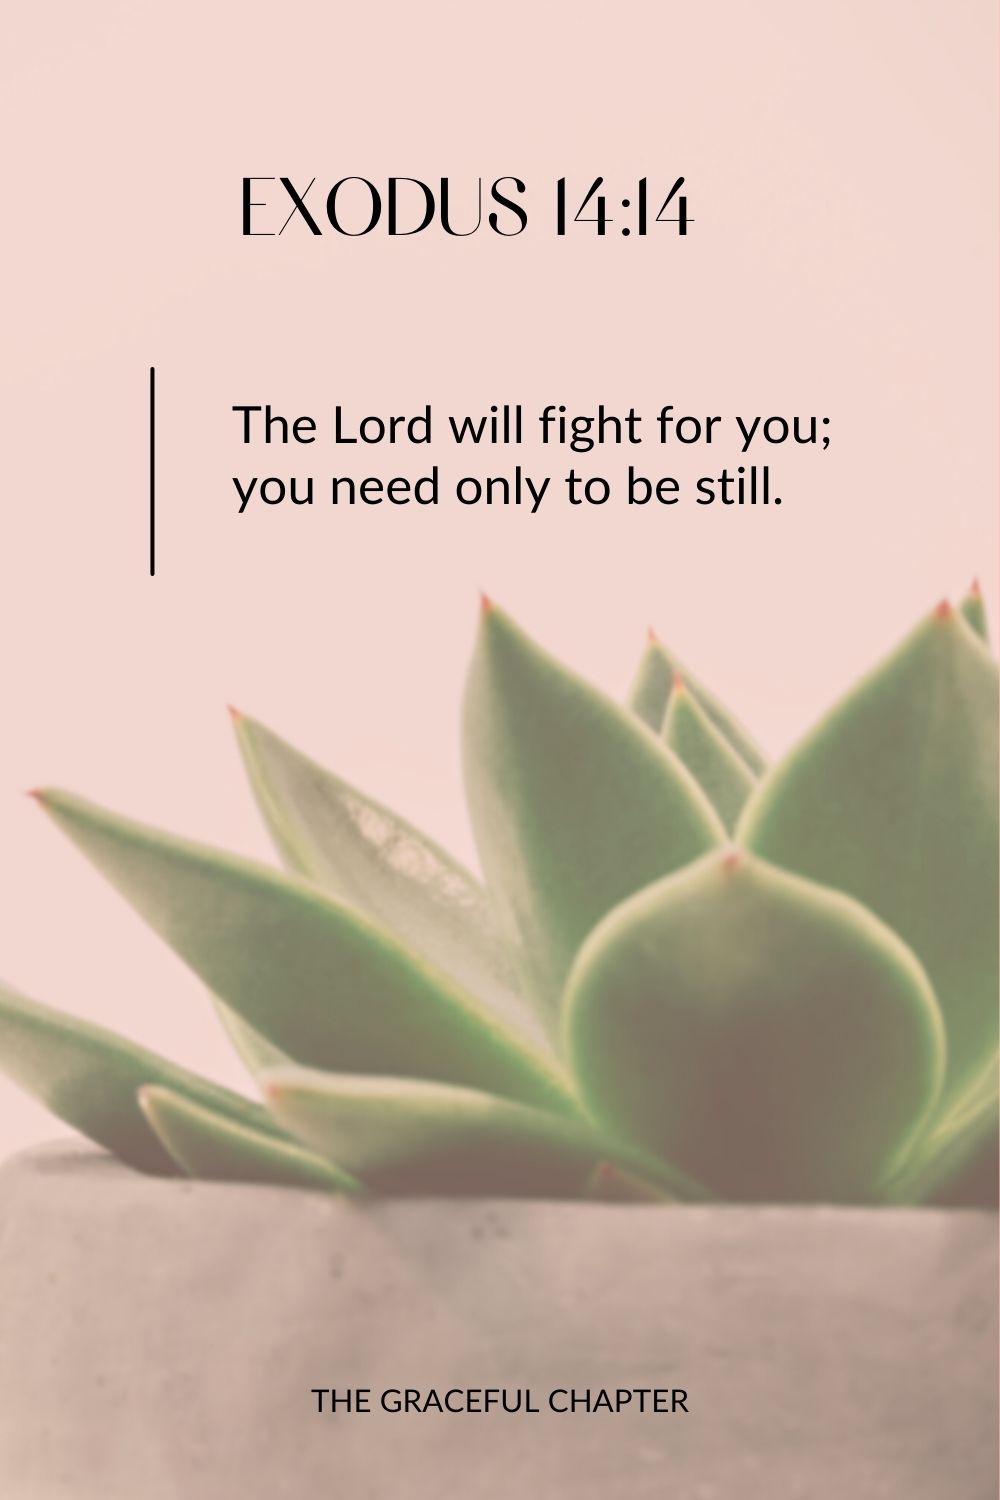 The Lord will fight for you; you need only to be still. Exodus 14:14